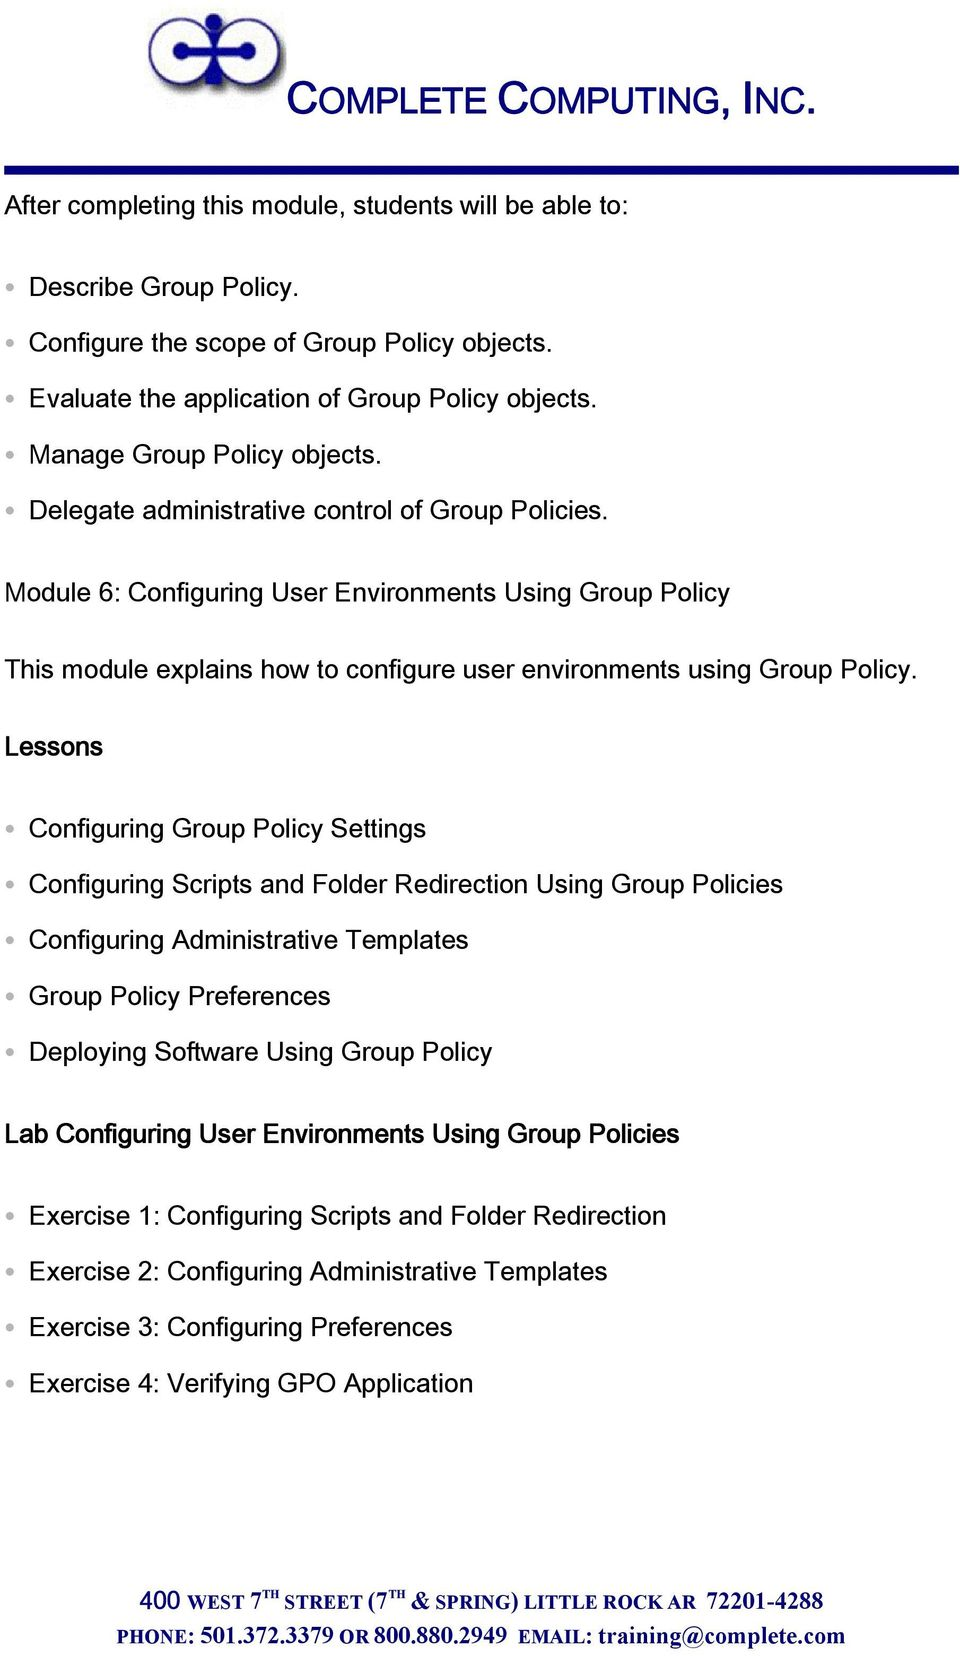 Configuring Group Policy Settings Configuring Scripts and Folder Redirection Using Group Policies Configuring Administrative Templates Group Policy Preferences Deploying Software Using Group